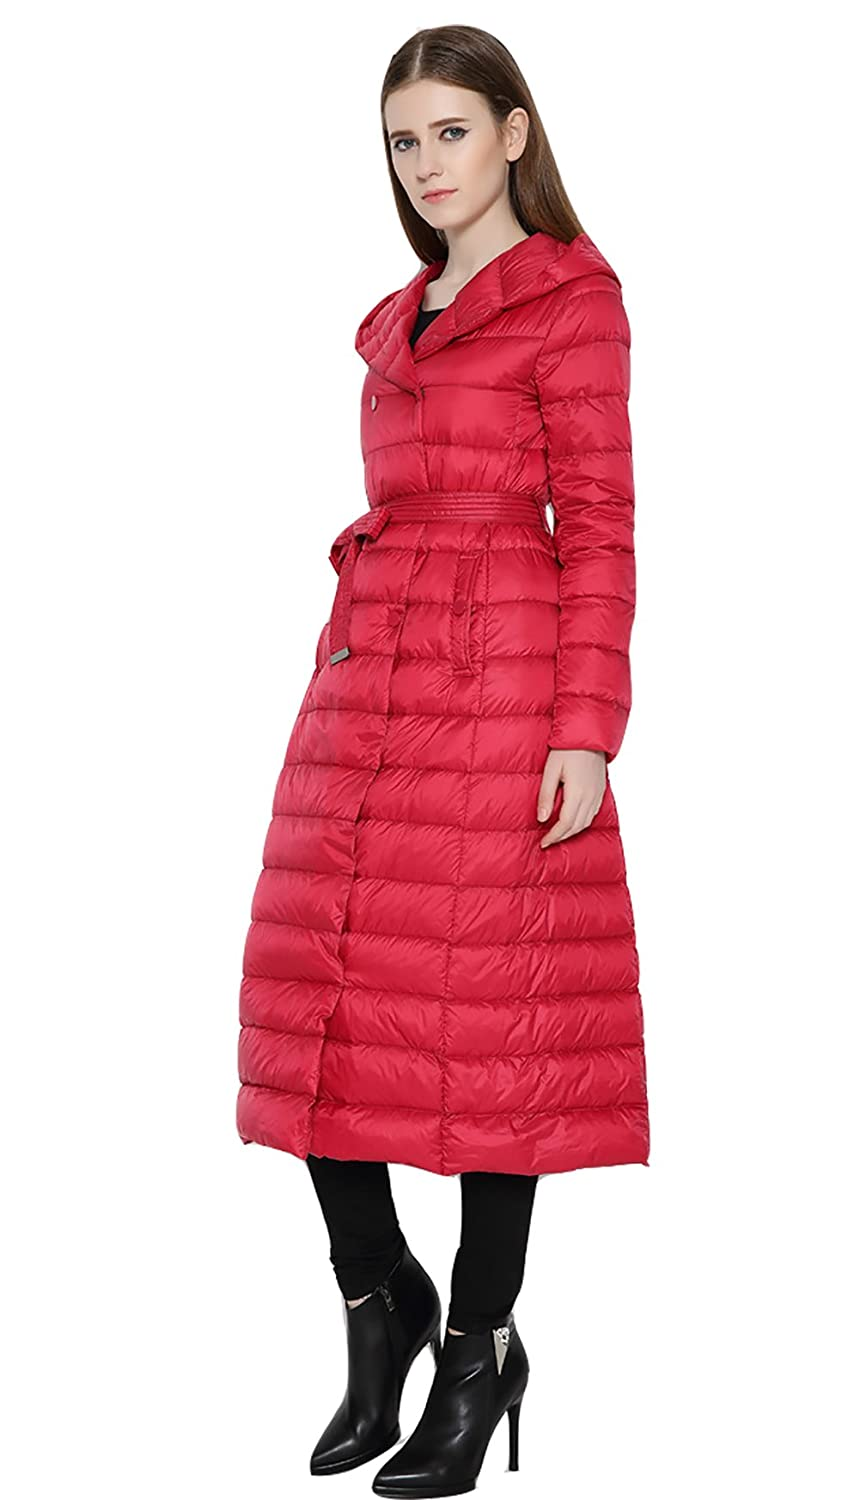 Wicky LS Women's Long Lightweight Thin Down Coat with Hood Double-Breasted